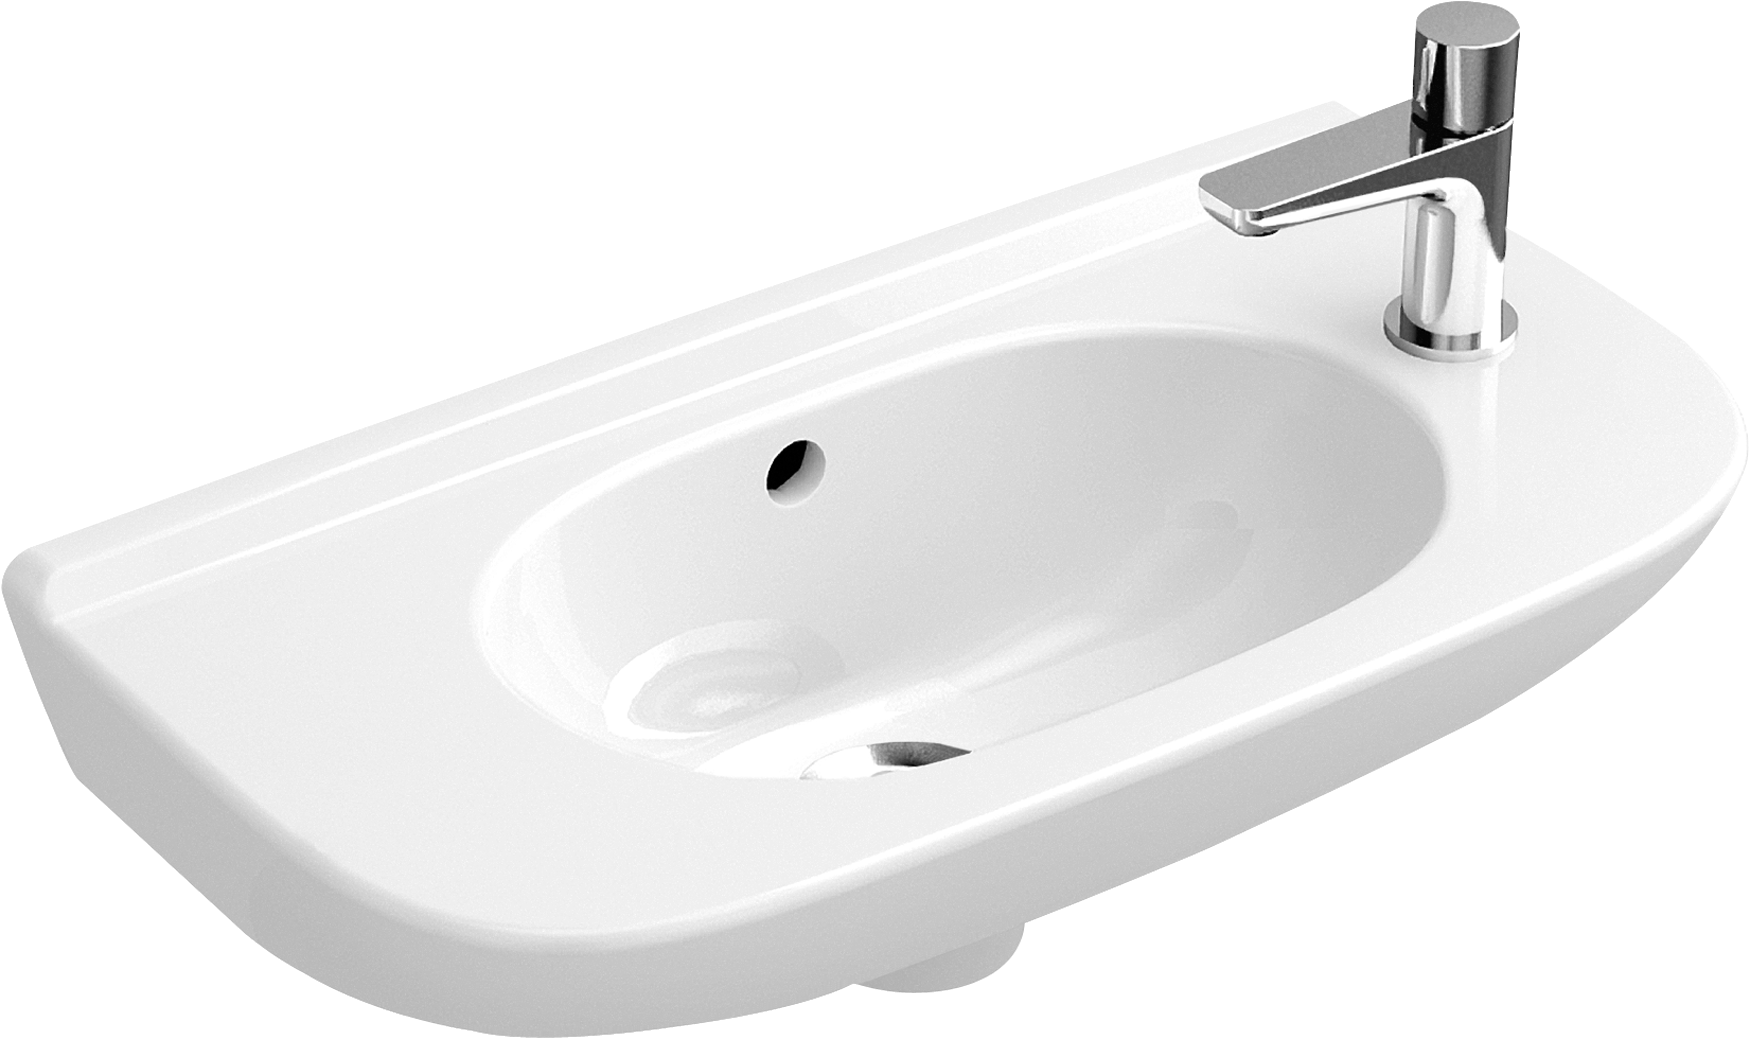 Sink PNG Image